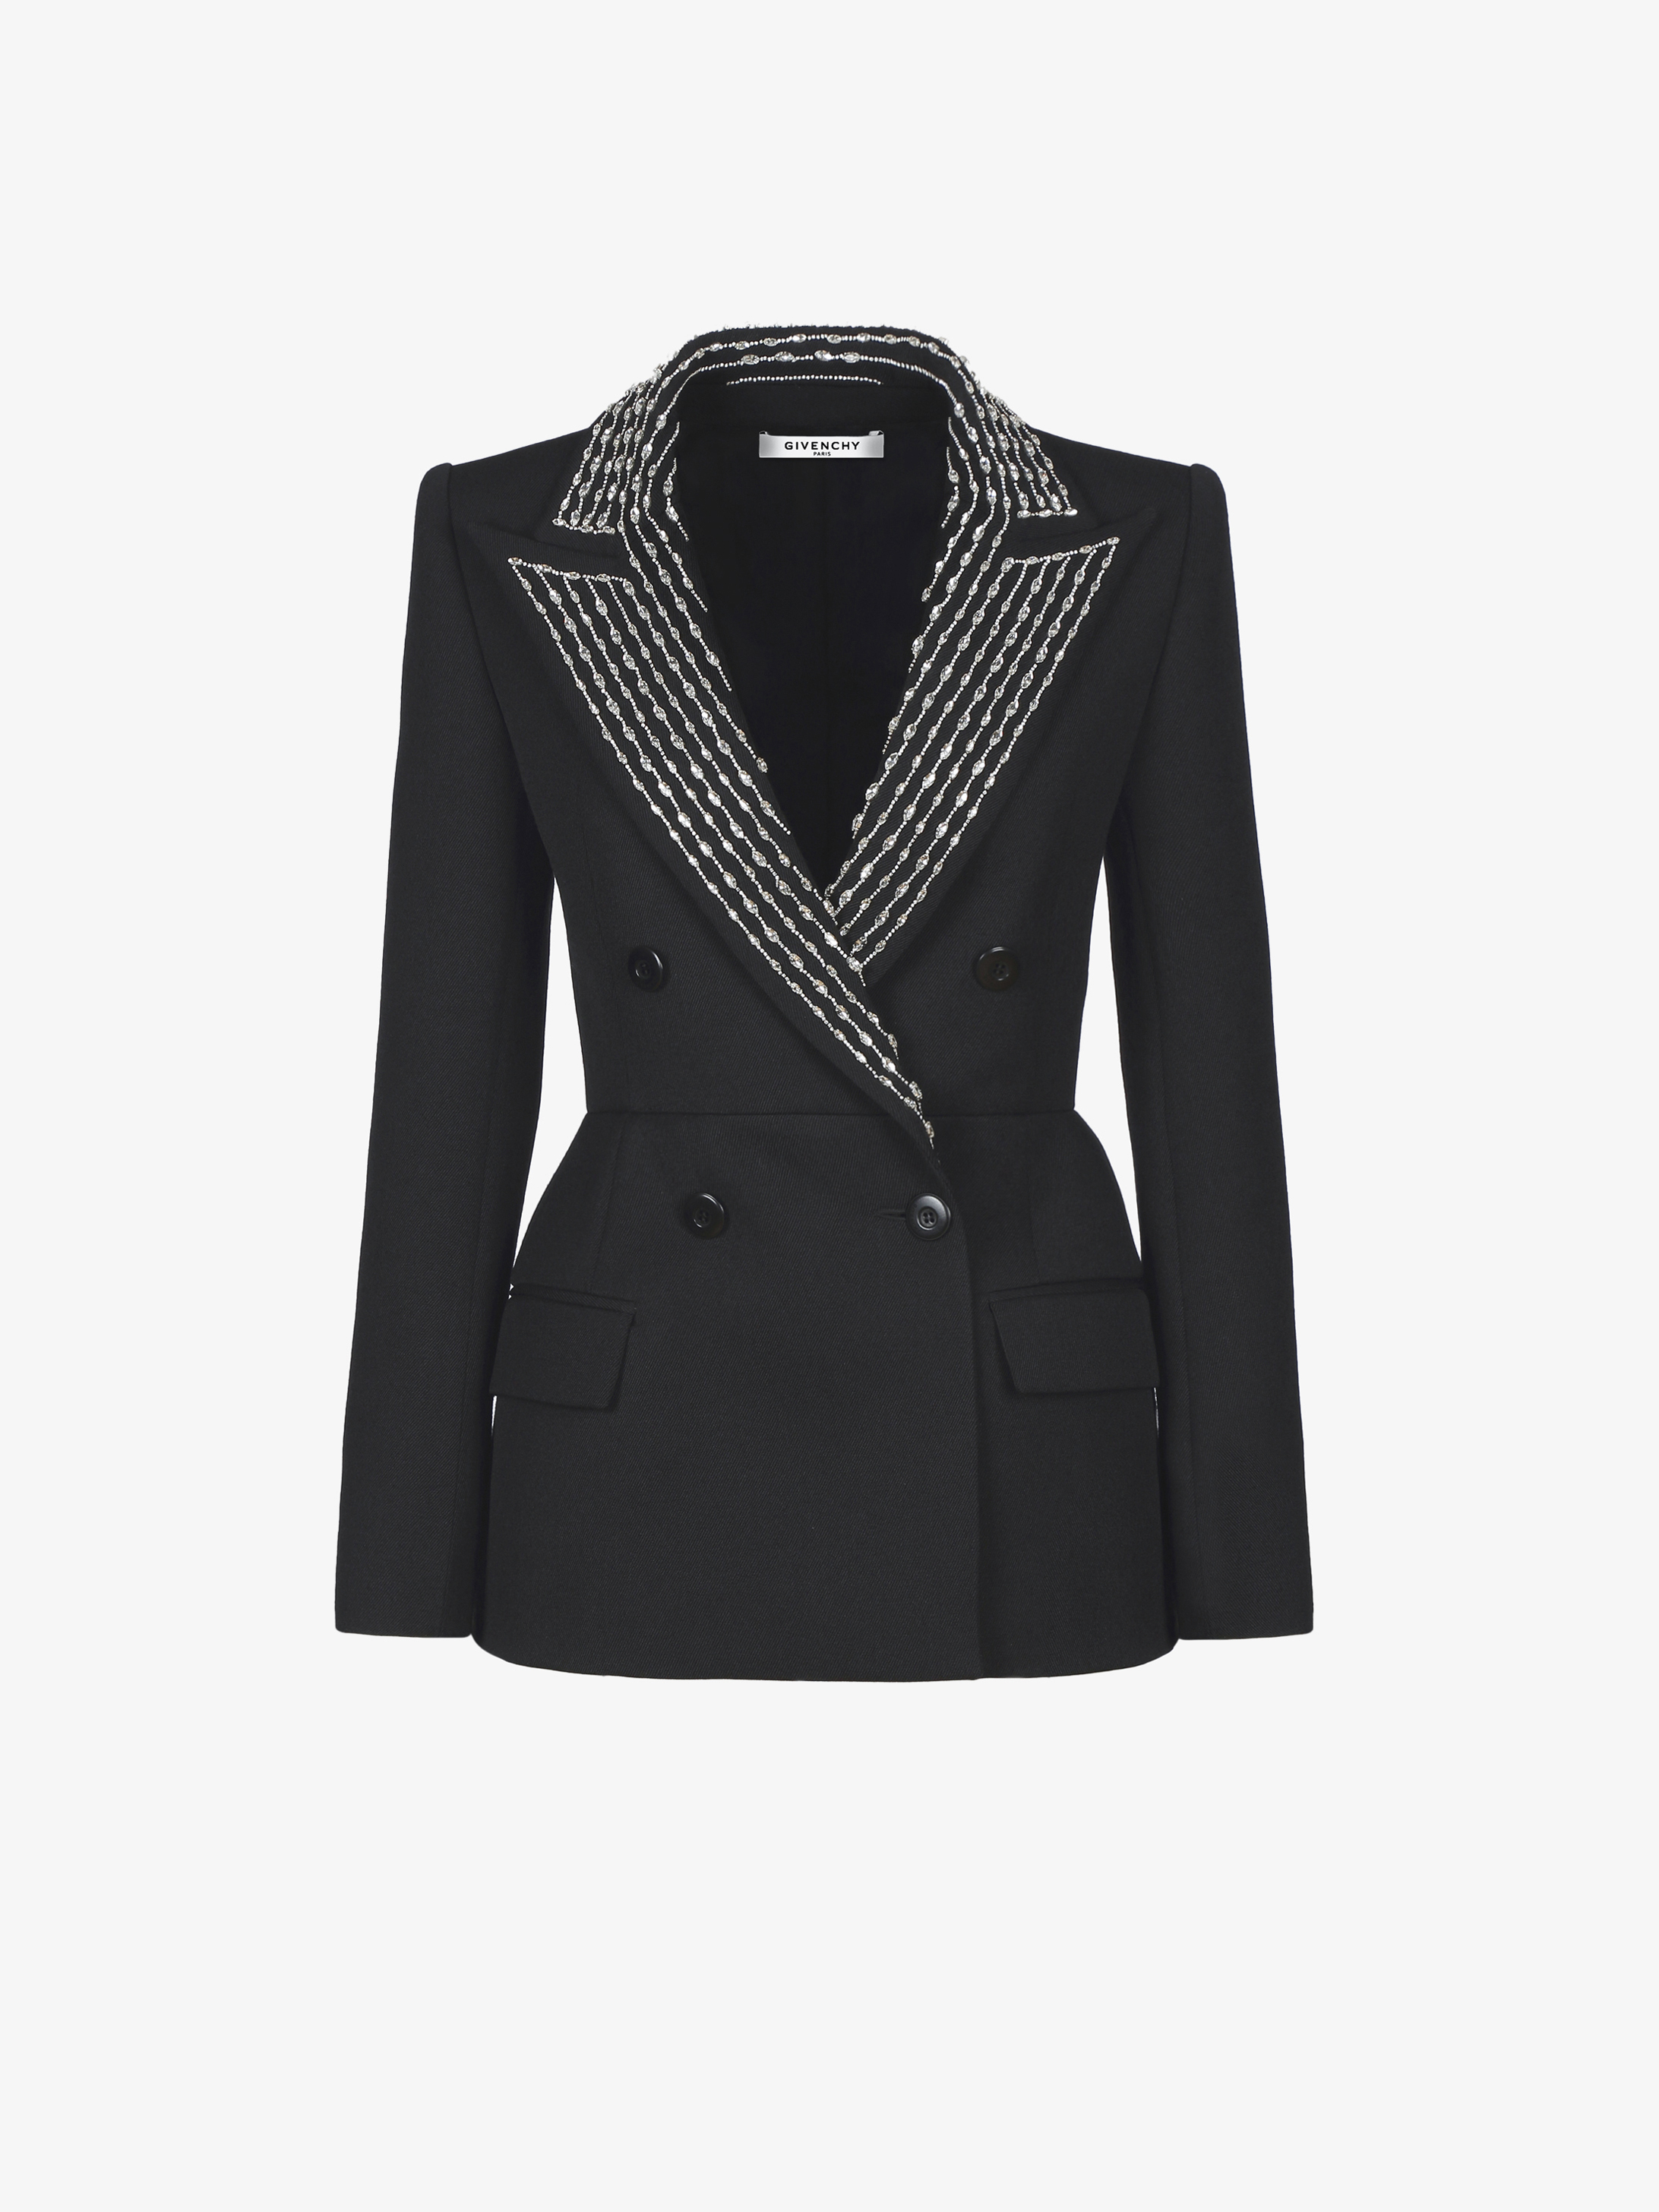 Jacket with crystal-embroidered peak lapel